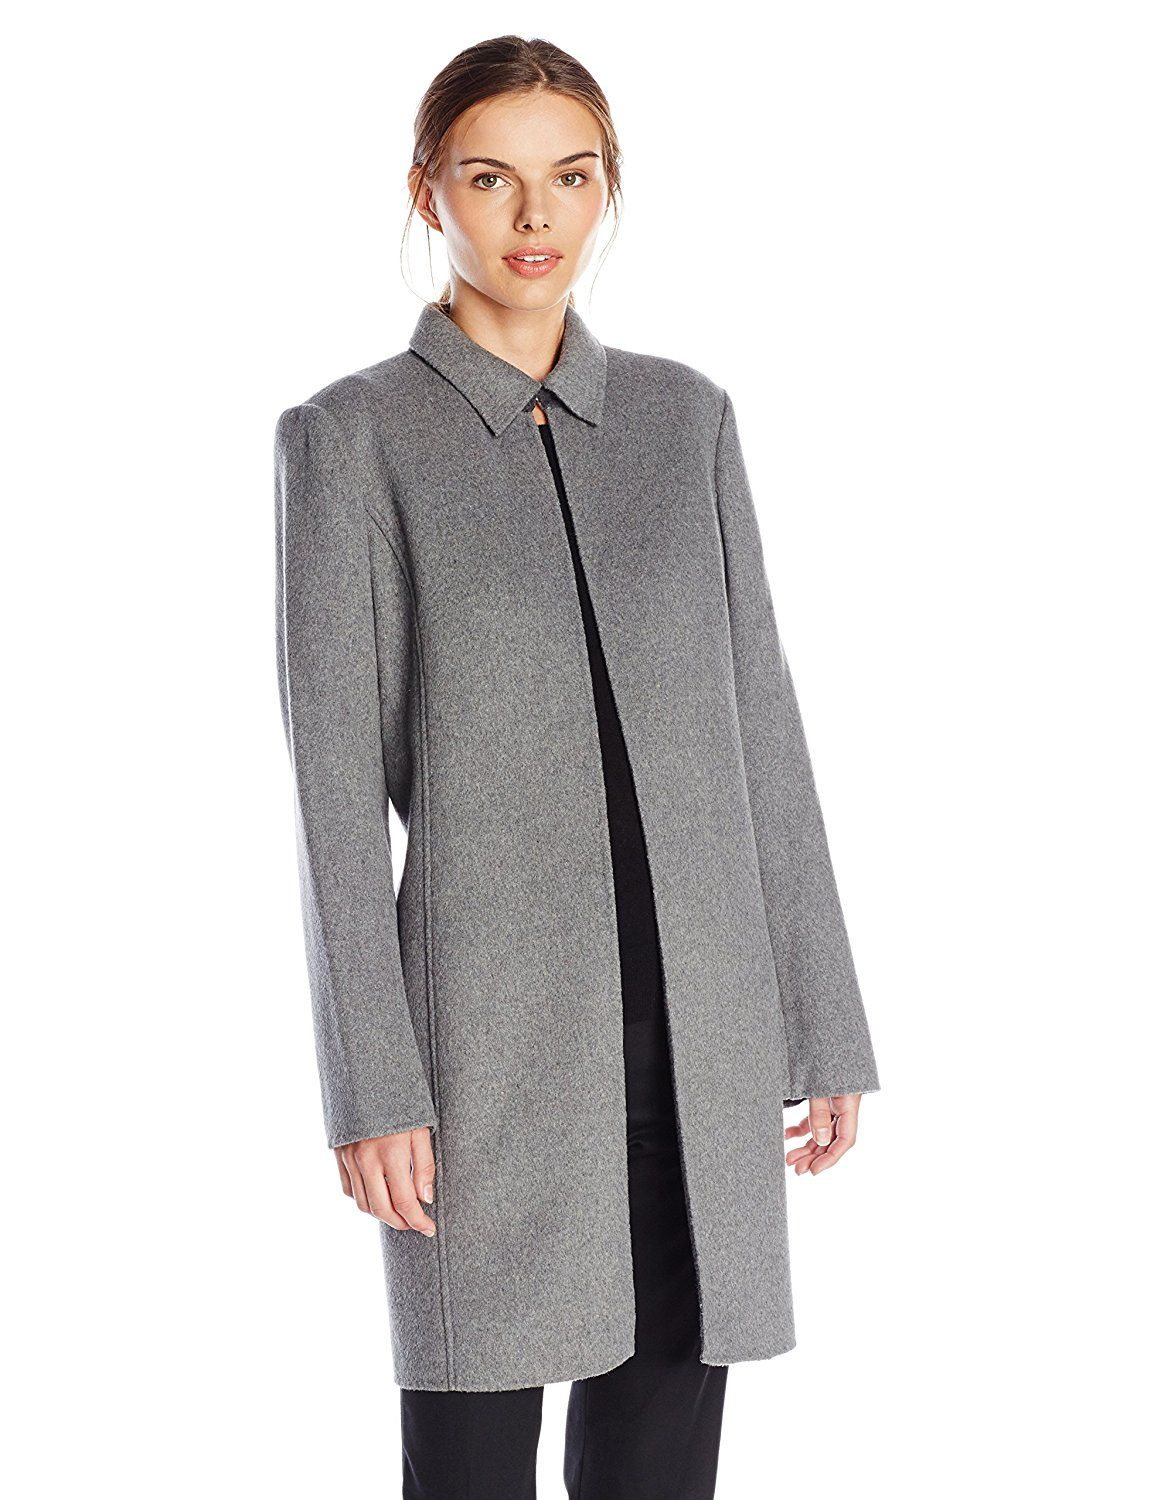 d585b17d8b7 Calvin Klein Women s Long Open Jacket   This is an Amazon Affiliate link.  Click image for more details.